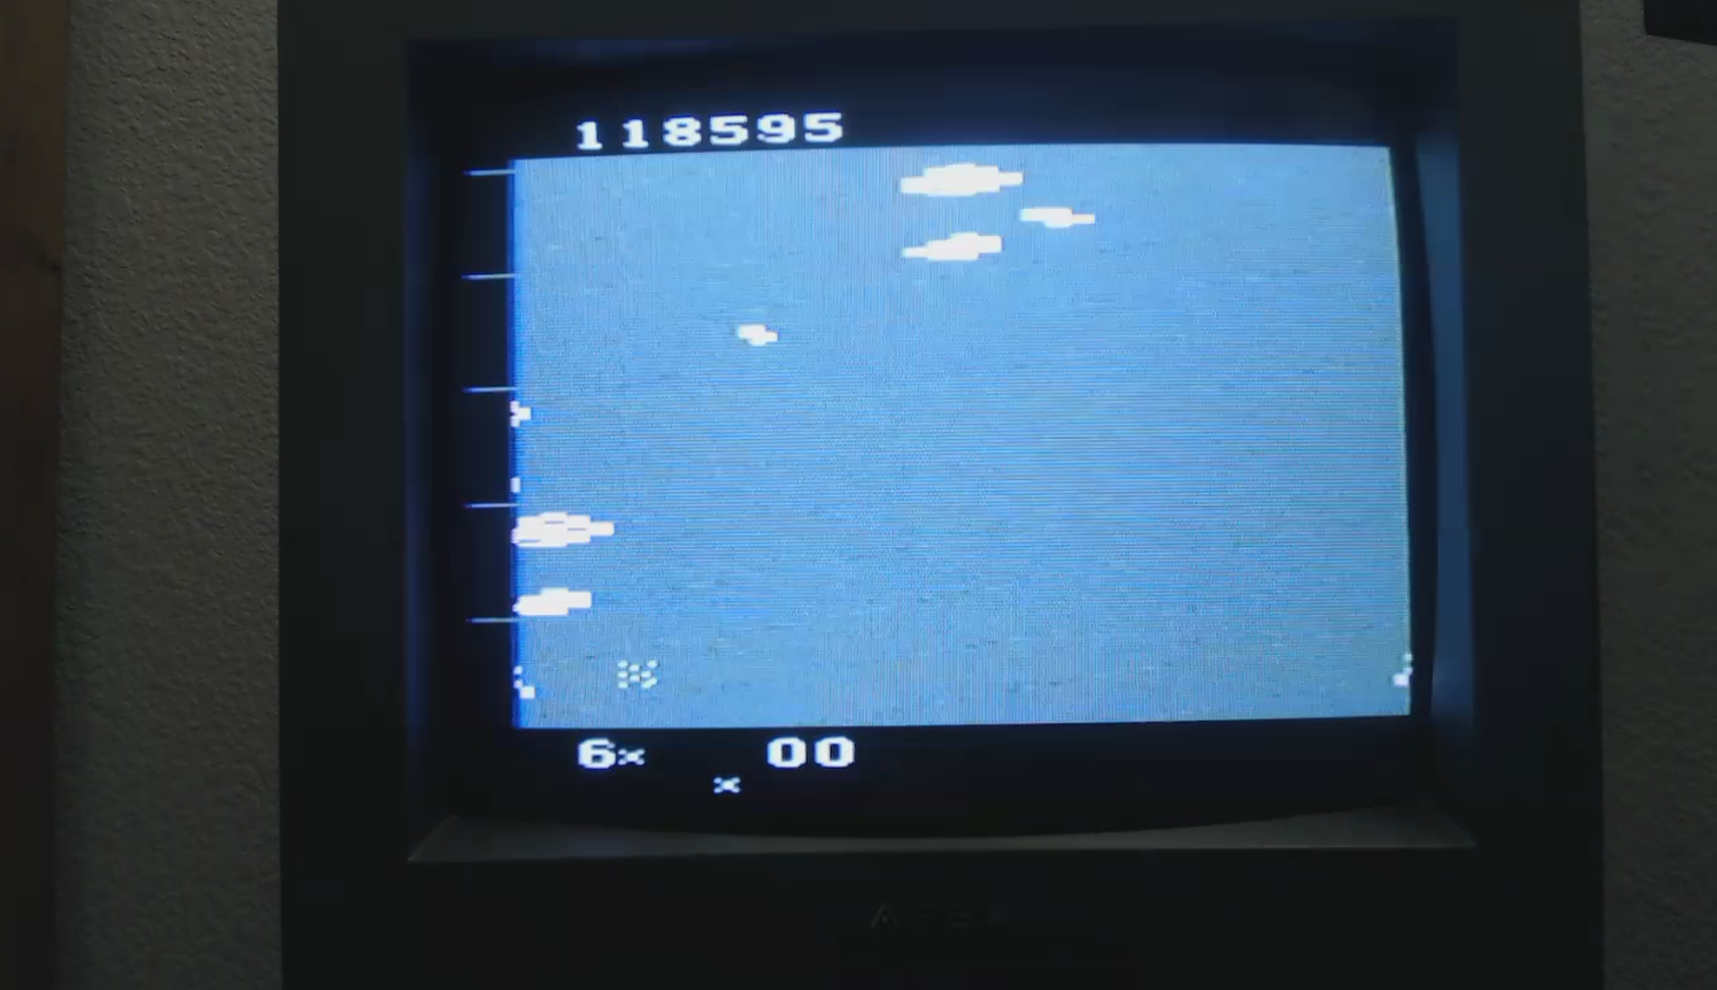 OriginalGamer: Astrowar / Meteor Defense / Kampf im Asteroiden-Gürtel (Atari 2600 Novice/B) 118,595 points on 2018-01-07 03:54:22